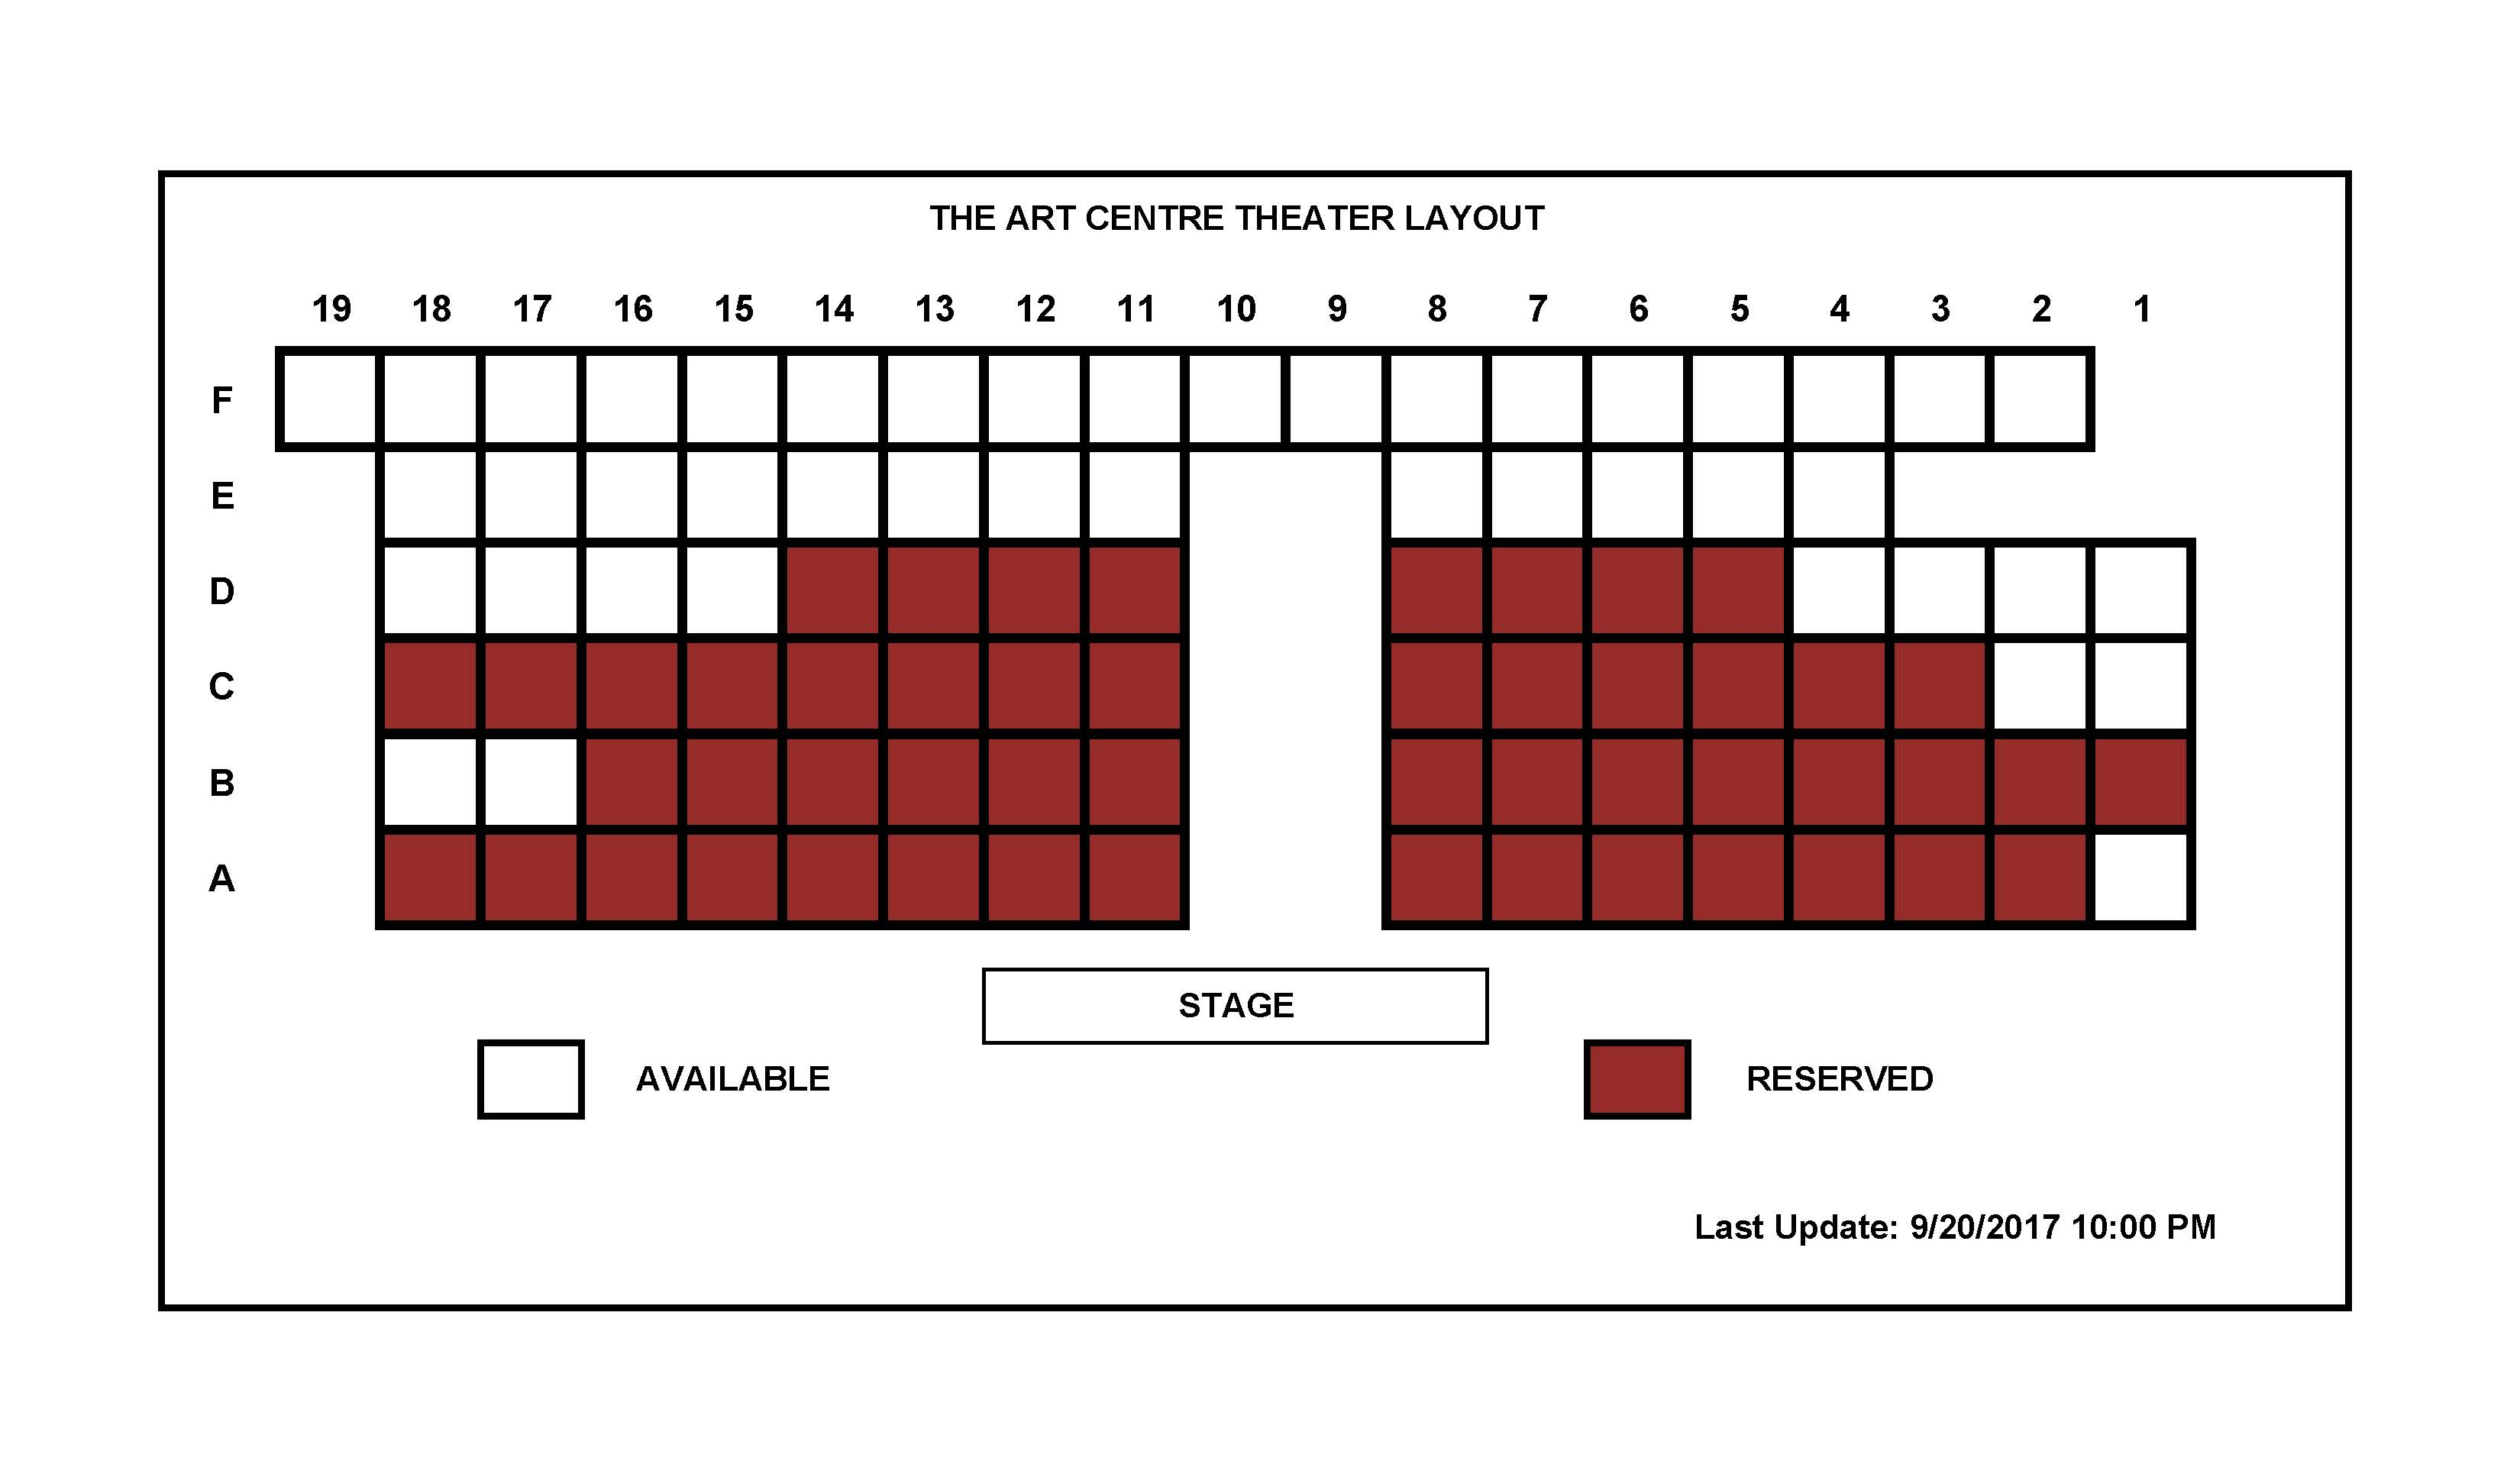 theater_seating_9-20-17.jpg